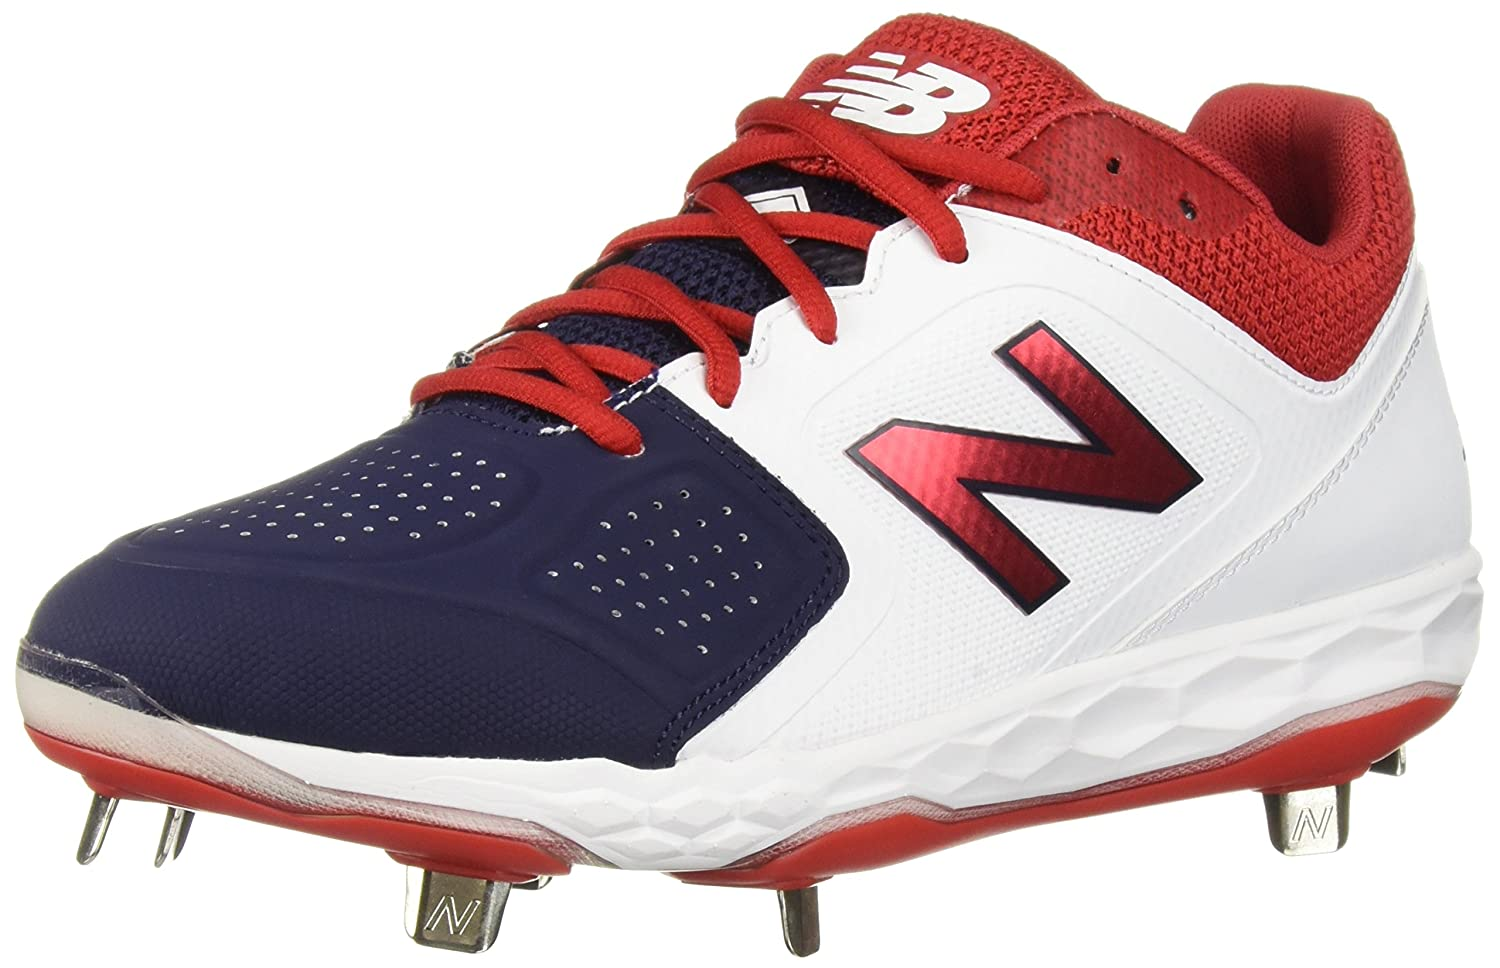 New Balance Women's Velo V1 Metal Softball Shoe B075R7BZ11 6.5 B(M) US|White/Red